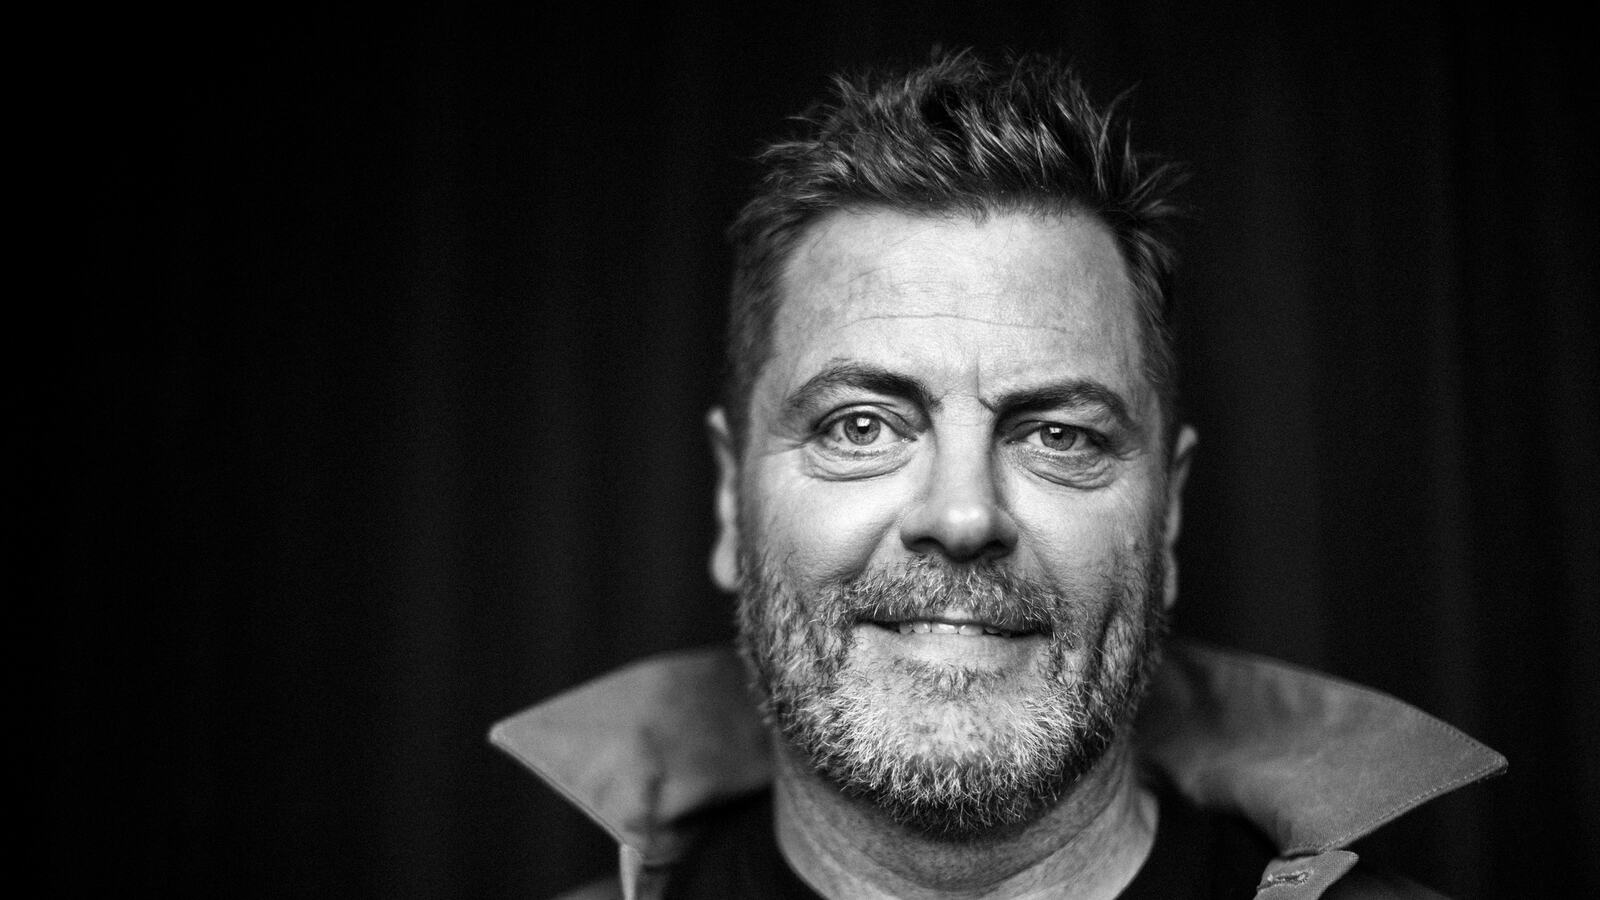 Nick Offerman, actor, writer, comedian and carpenter